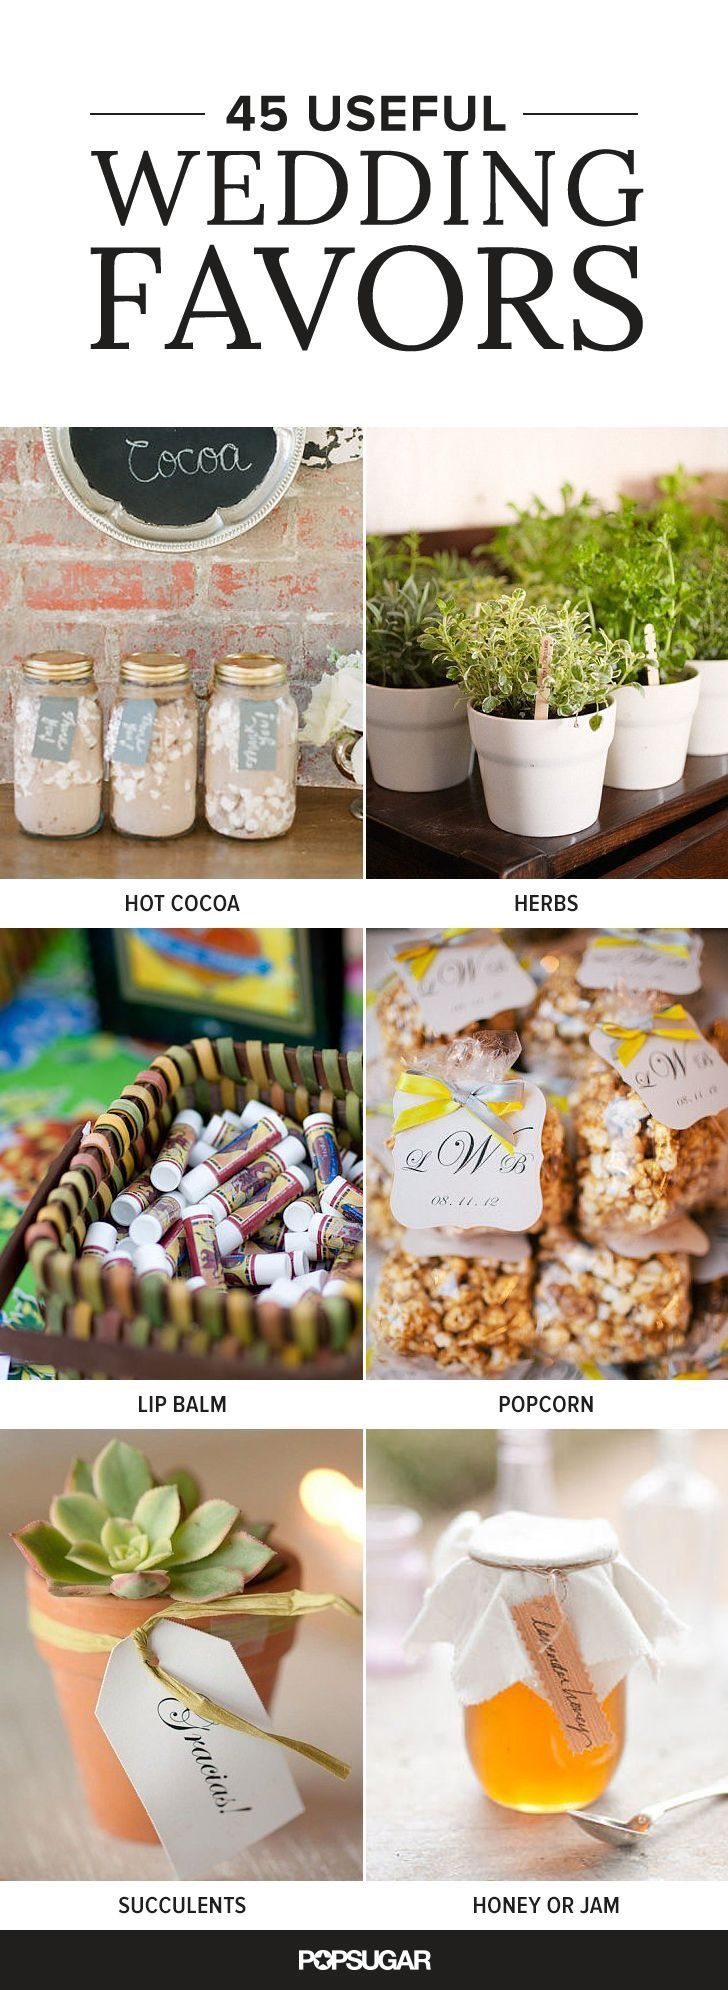 I like 16,17,18,19,35, and 39. I think the hot chocolate would be cute if it was a winter wedding especially